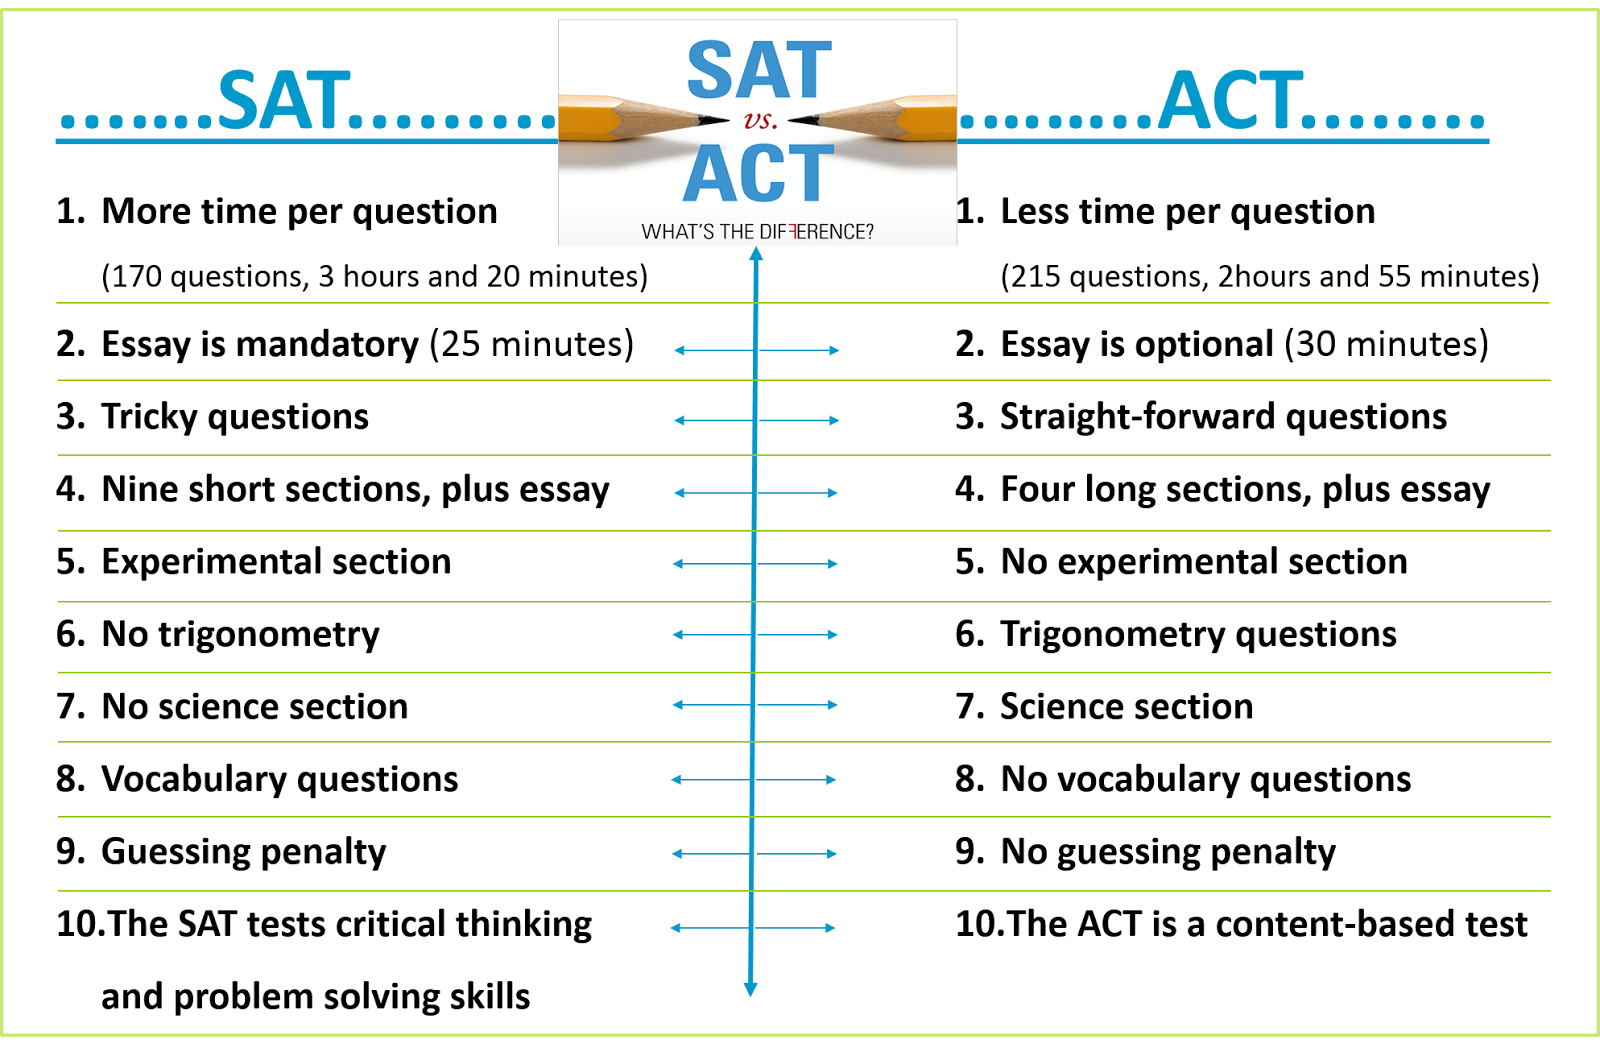 005 Essay Example Act Time Sat Vs  Unique Limit TestFull